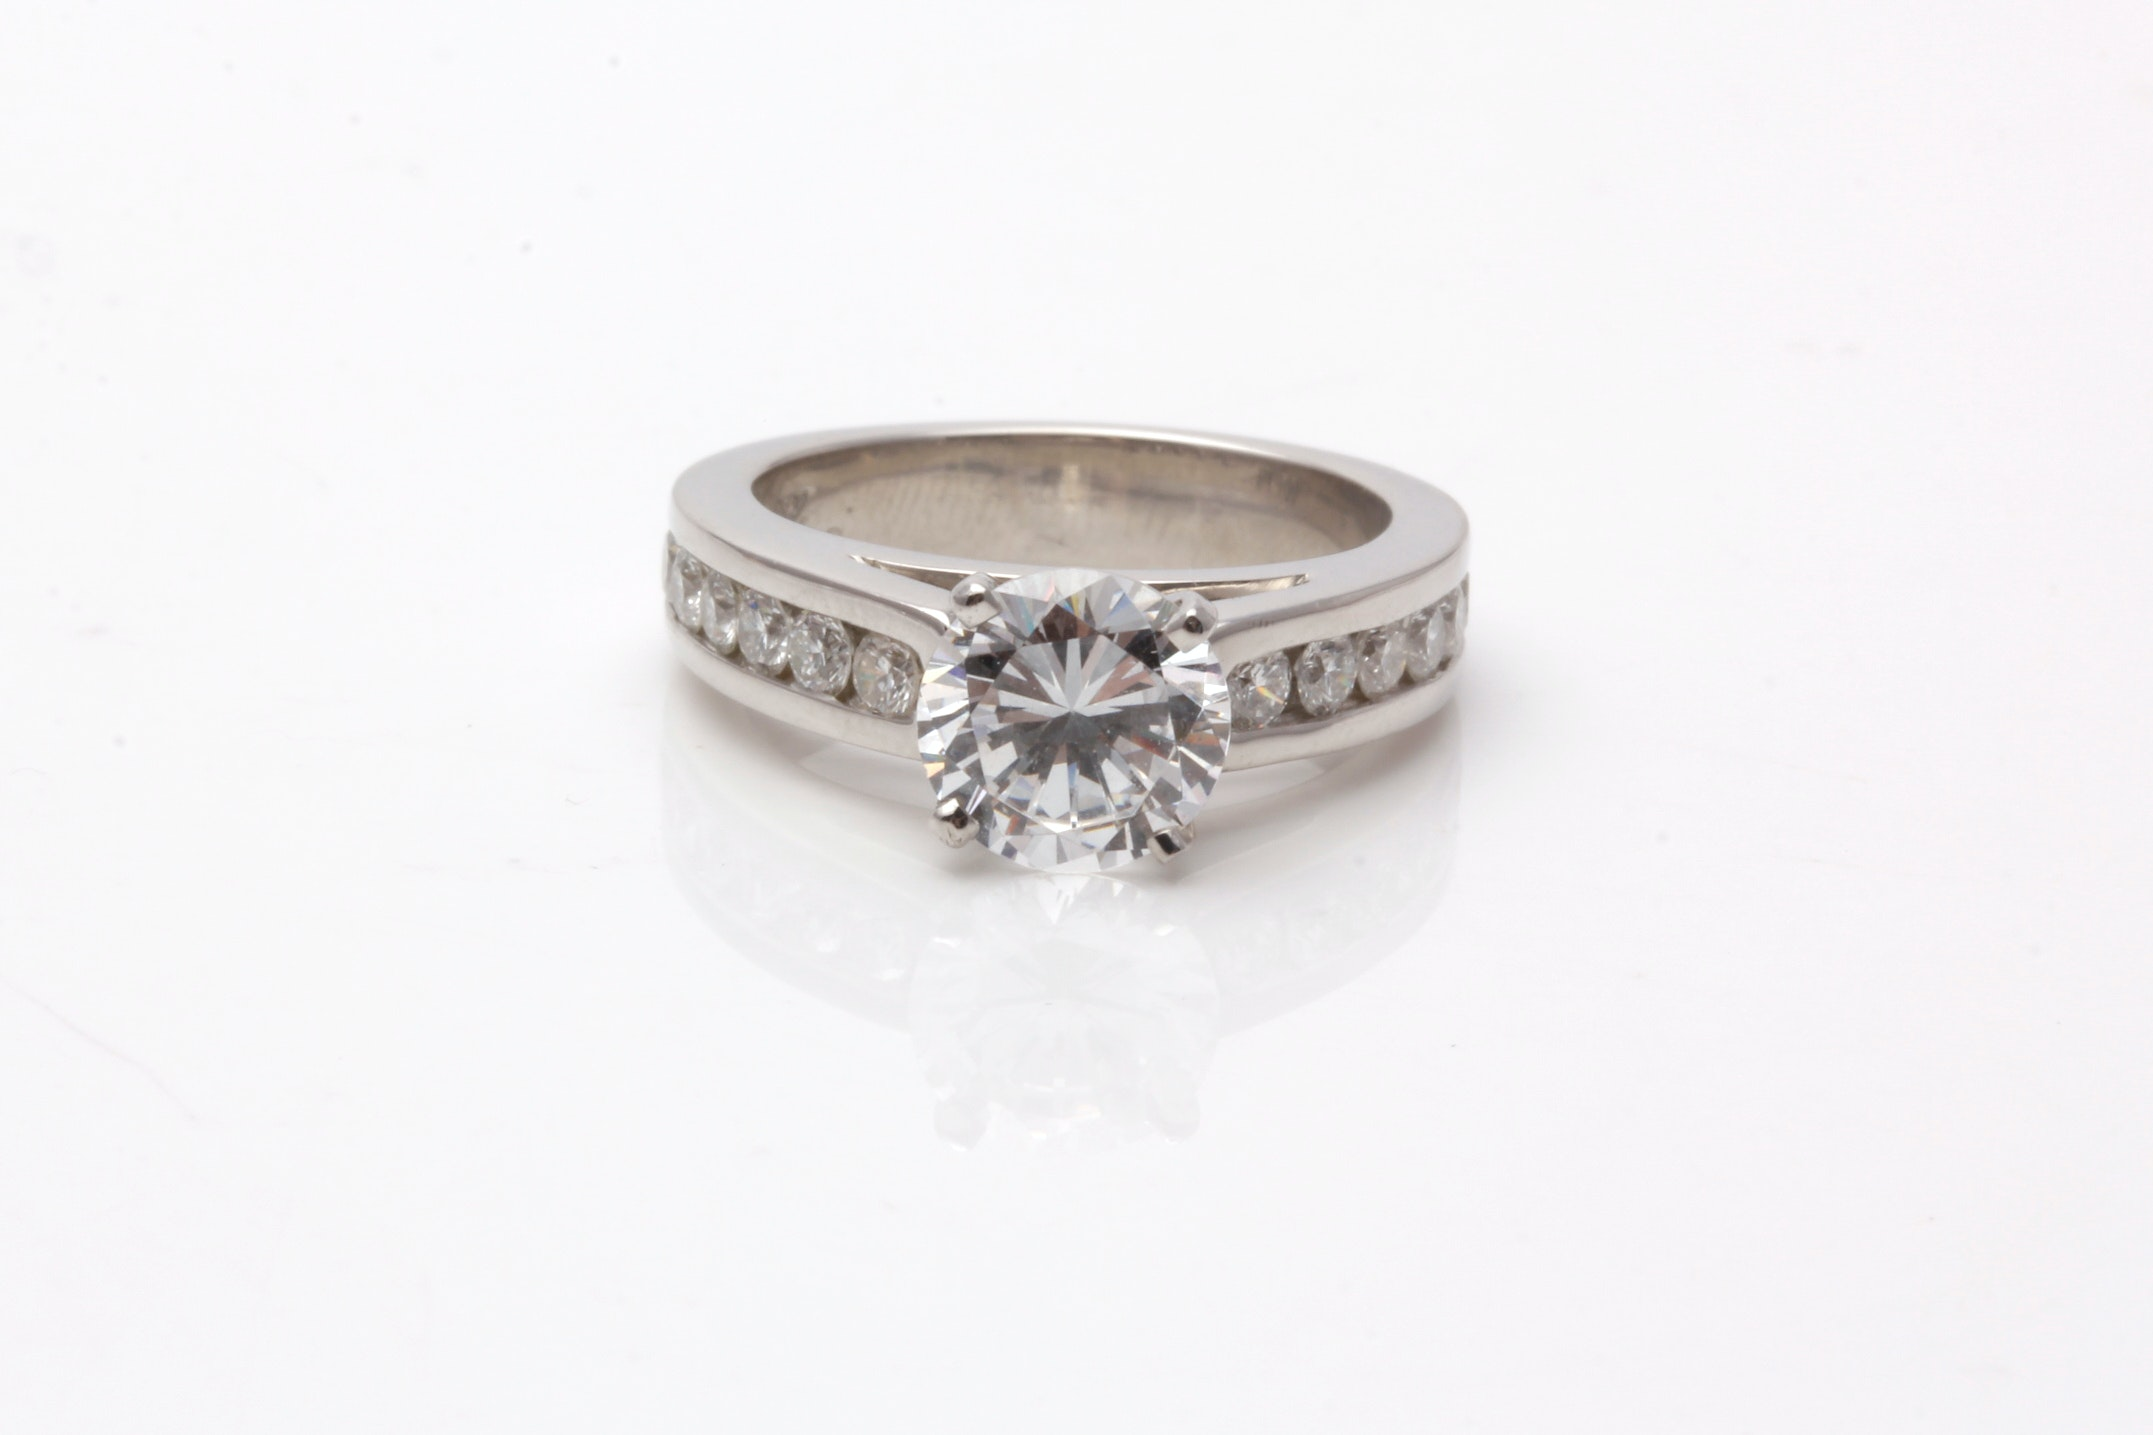 Platinum and Diamond Semi Mount Ring With Cubic Zirconia Center Stone